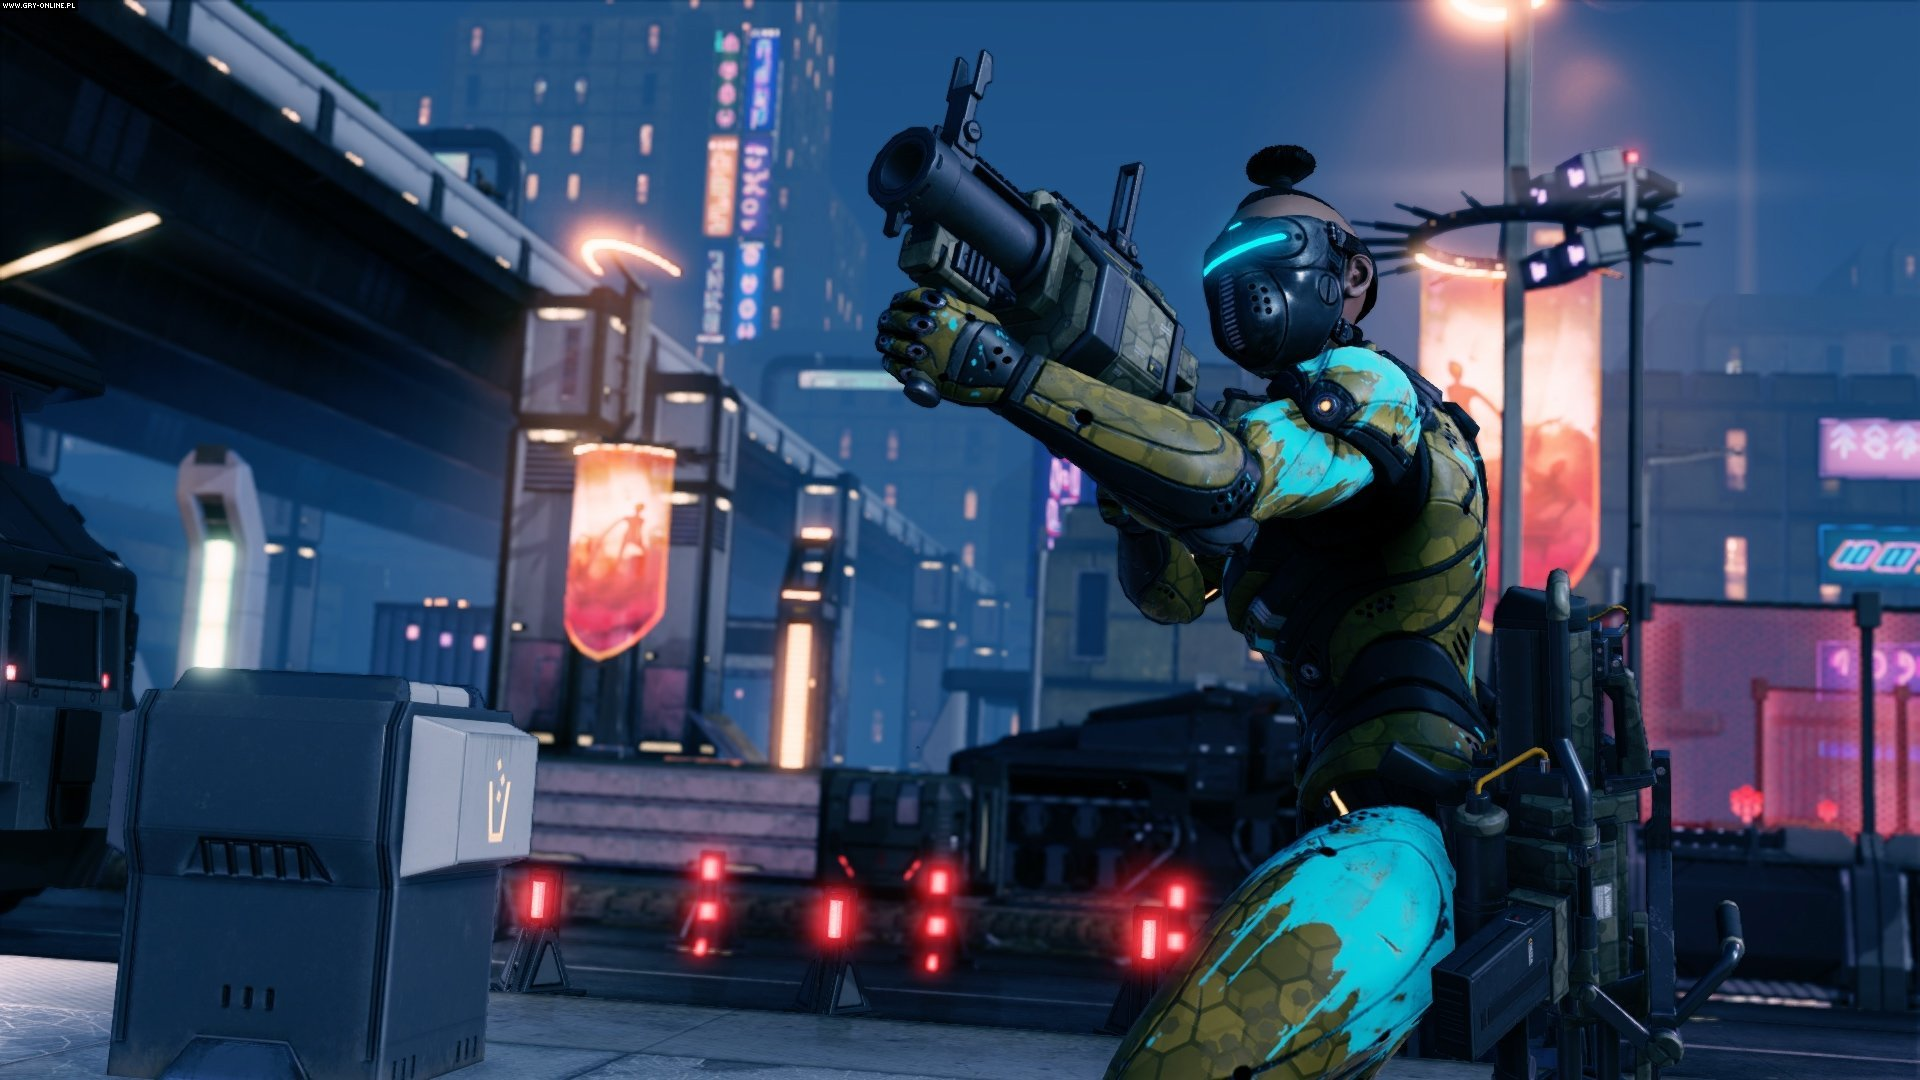 XCOM 2 PC Games Image 26/176, Firaxis Games, 2K Games